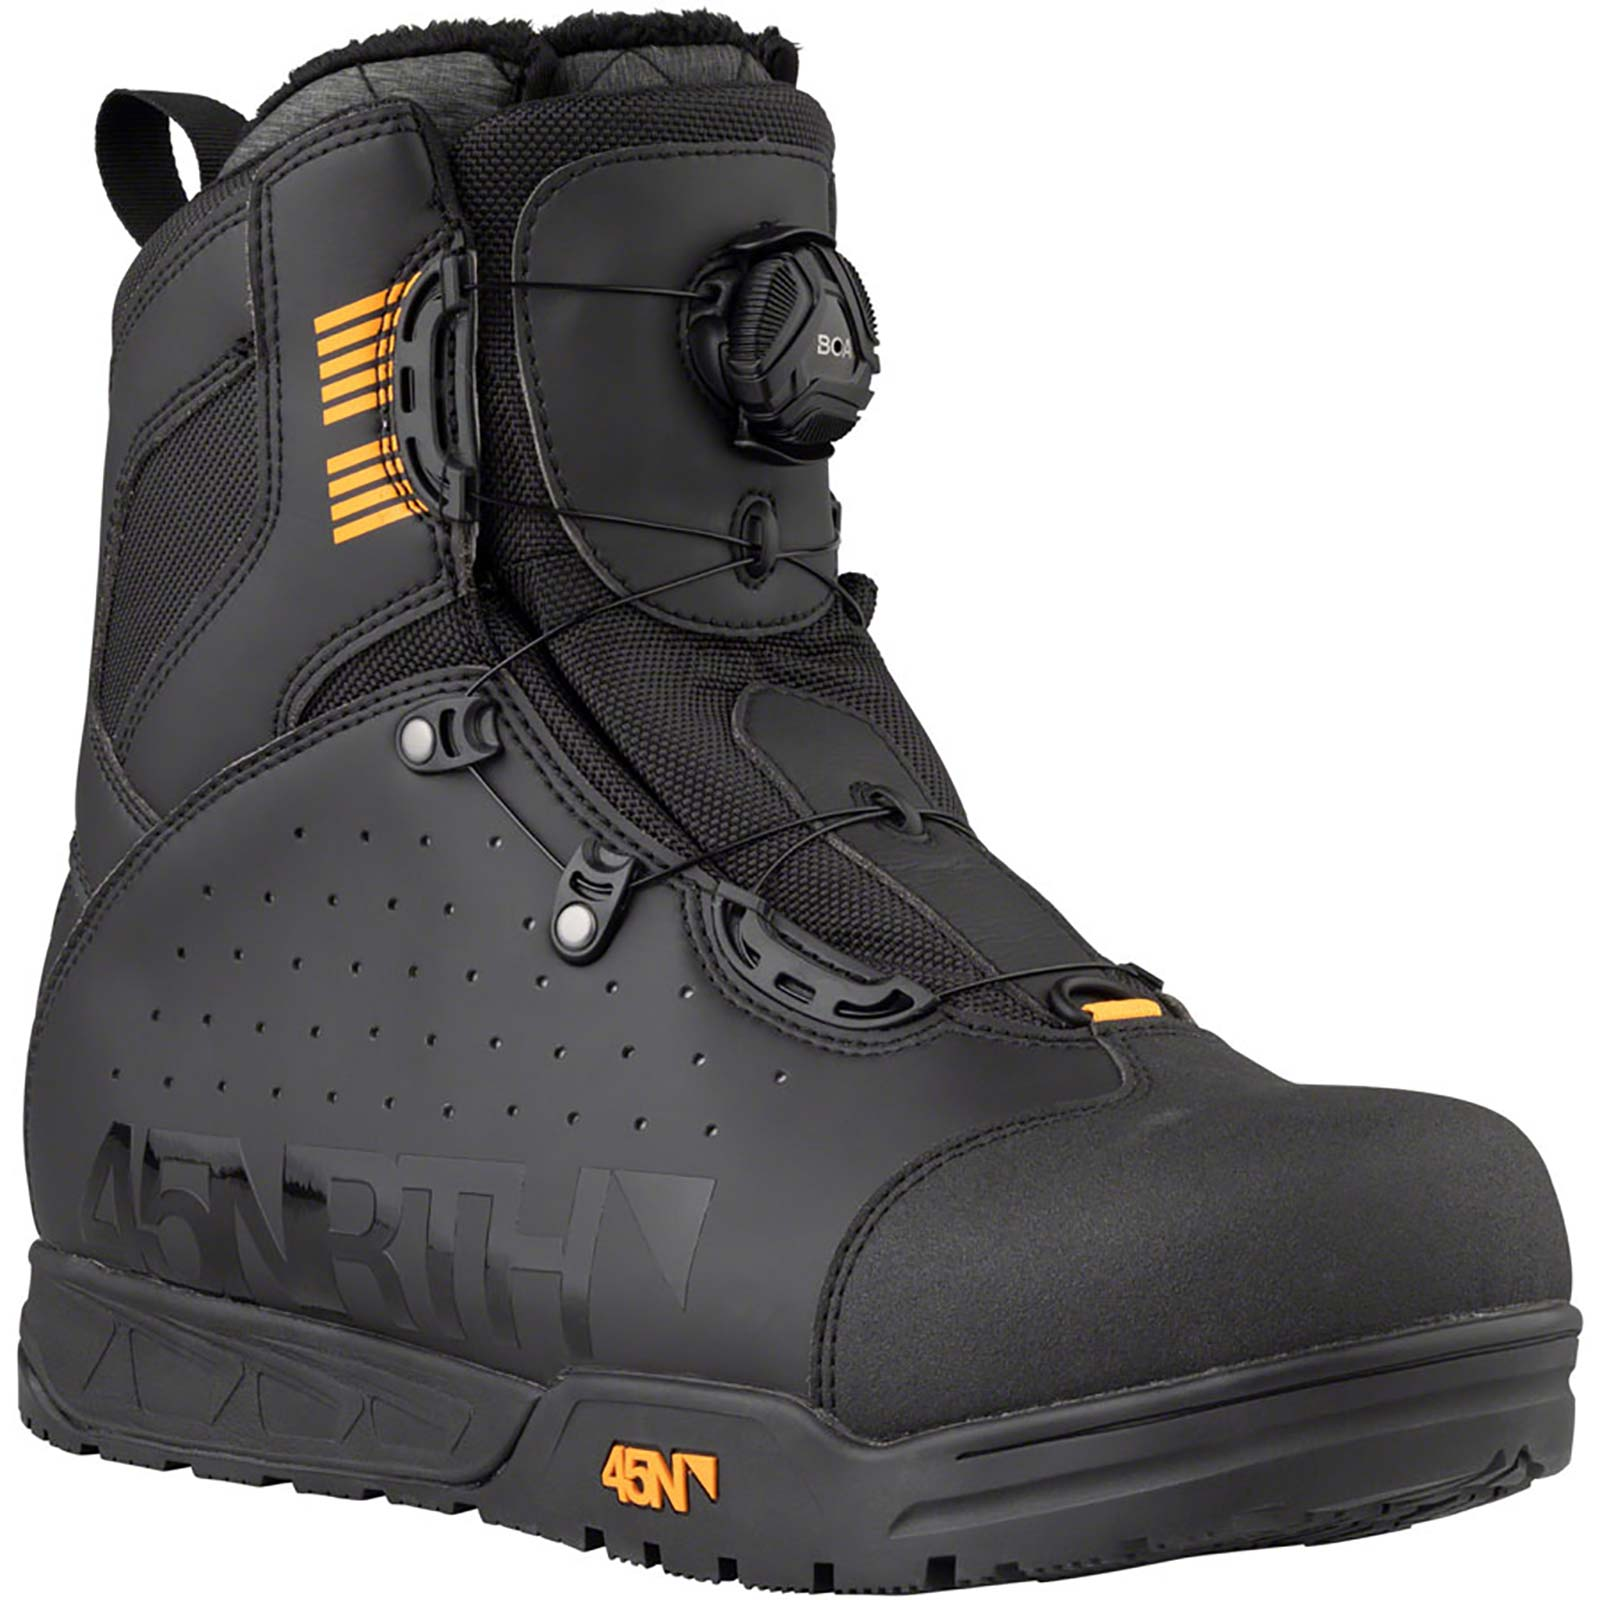 45NRTH Wolvhammer Cycling Boot BOA Closure